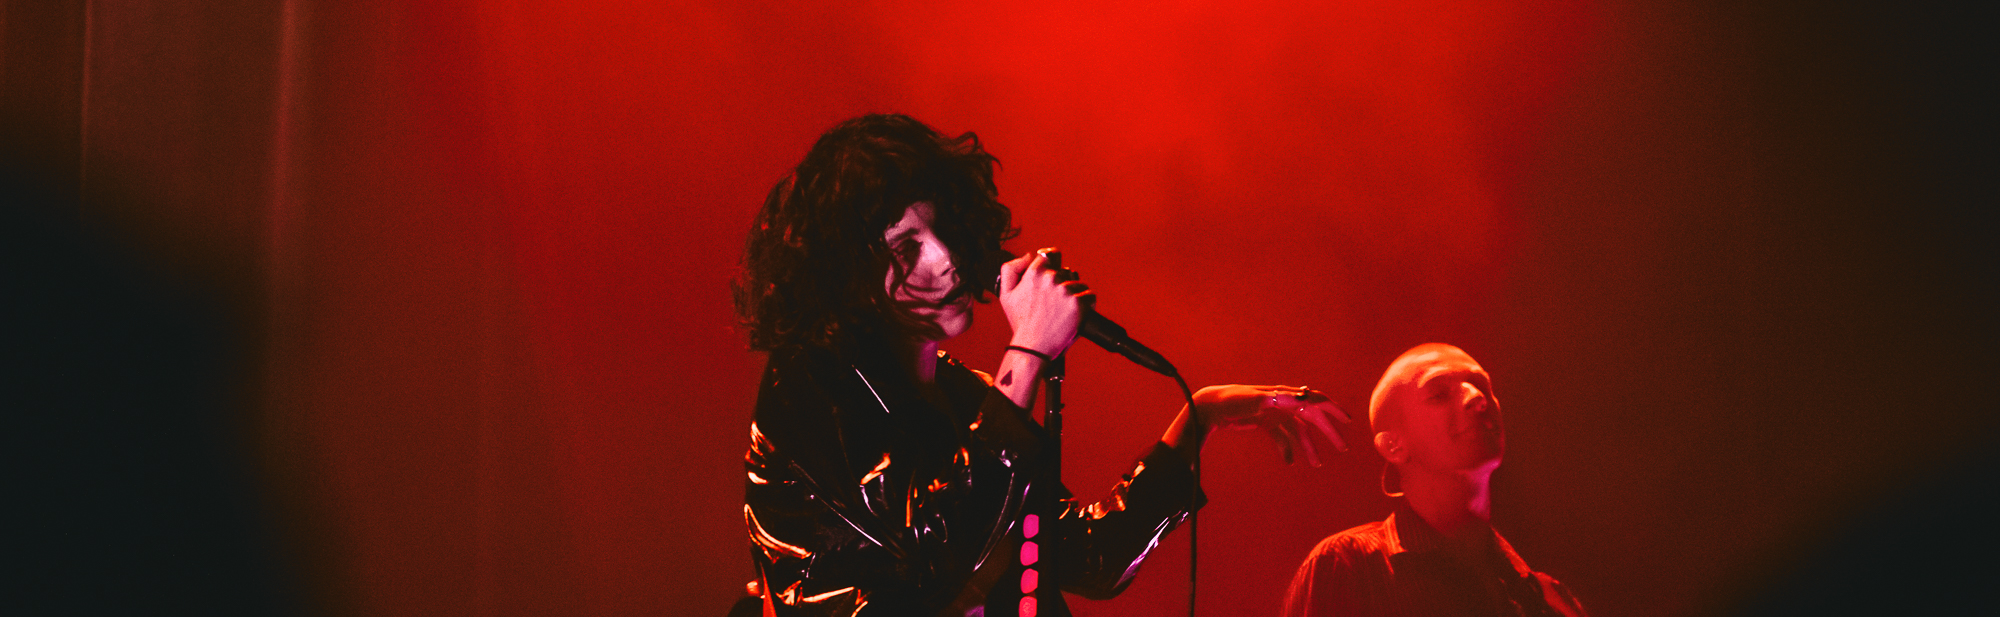 PaleWaves_header-01.jpg